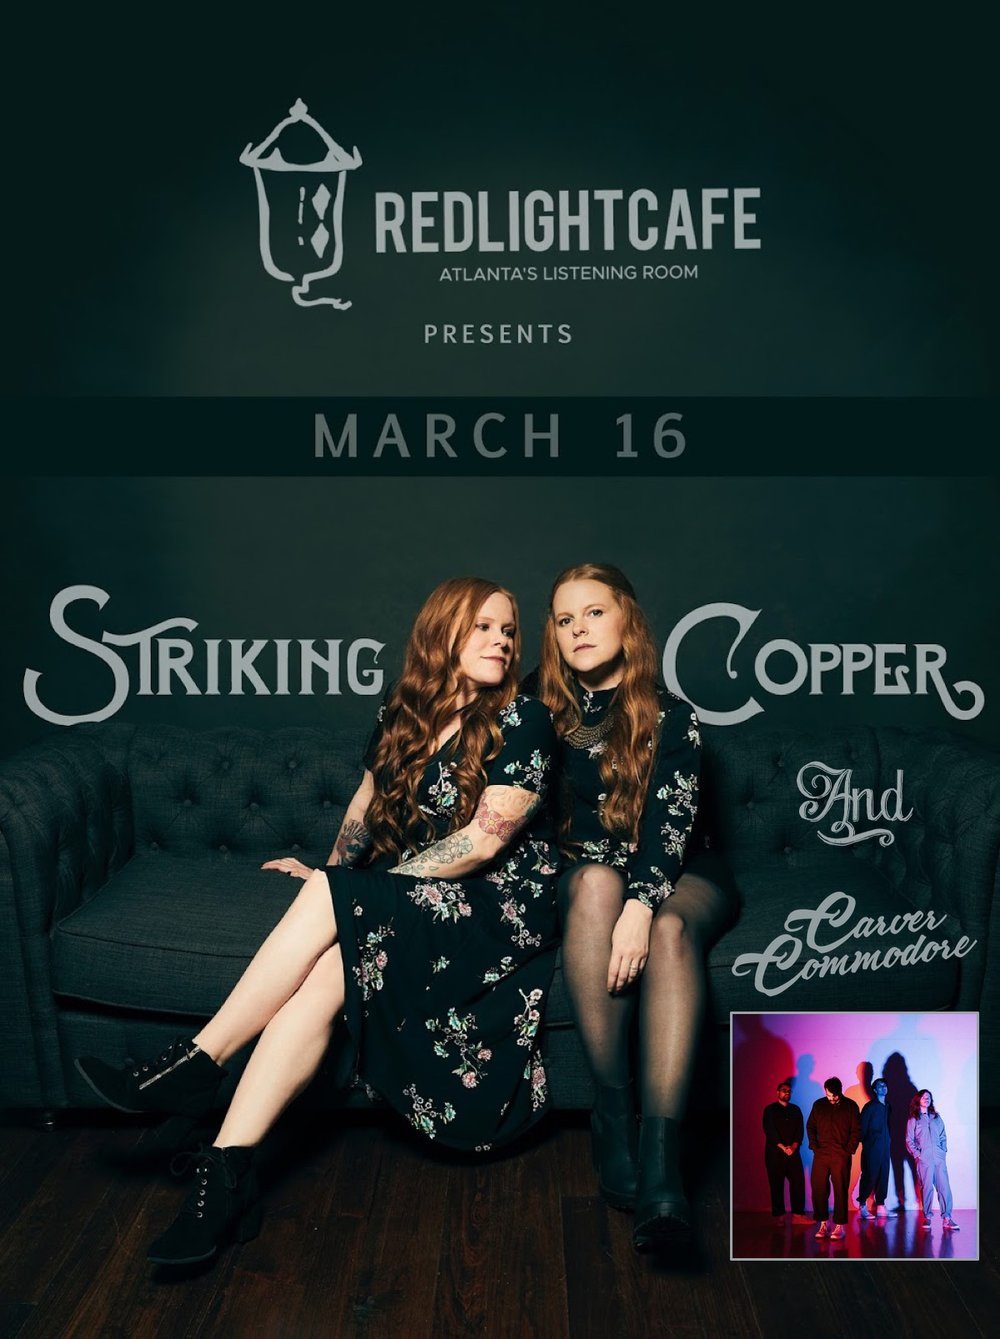 Striking Copper + Carver Commodore w/ special guests — March 16, 2019 — Red Light Café, Atlanta, GA